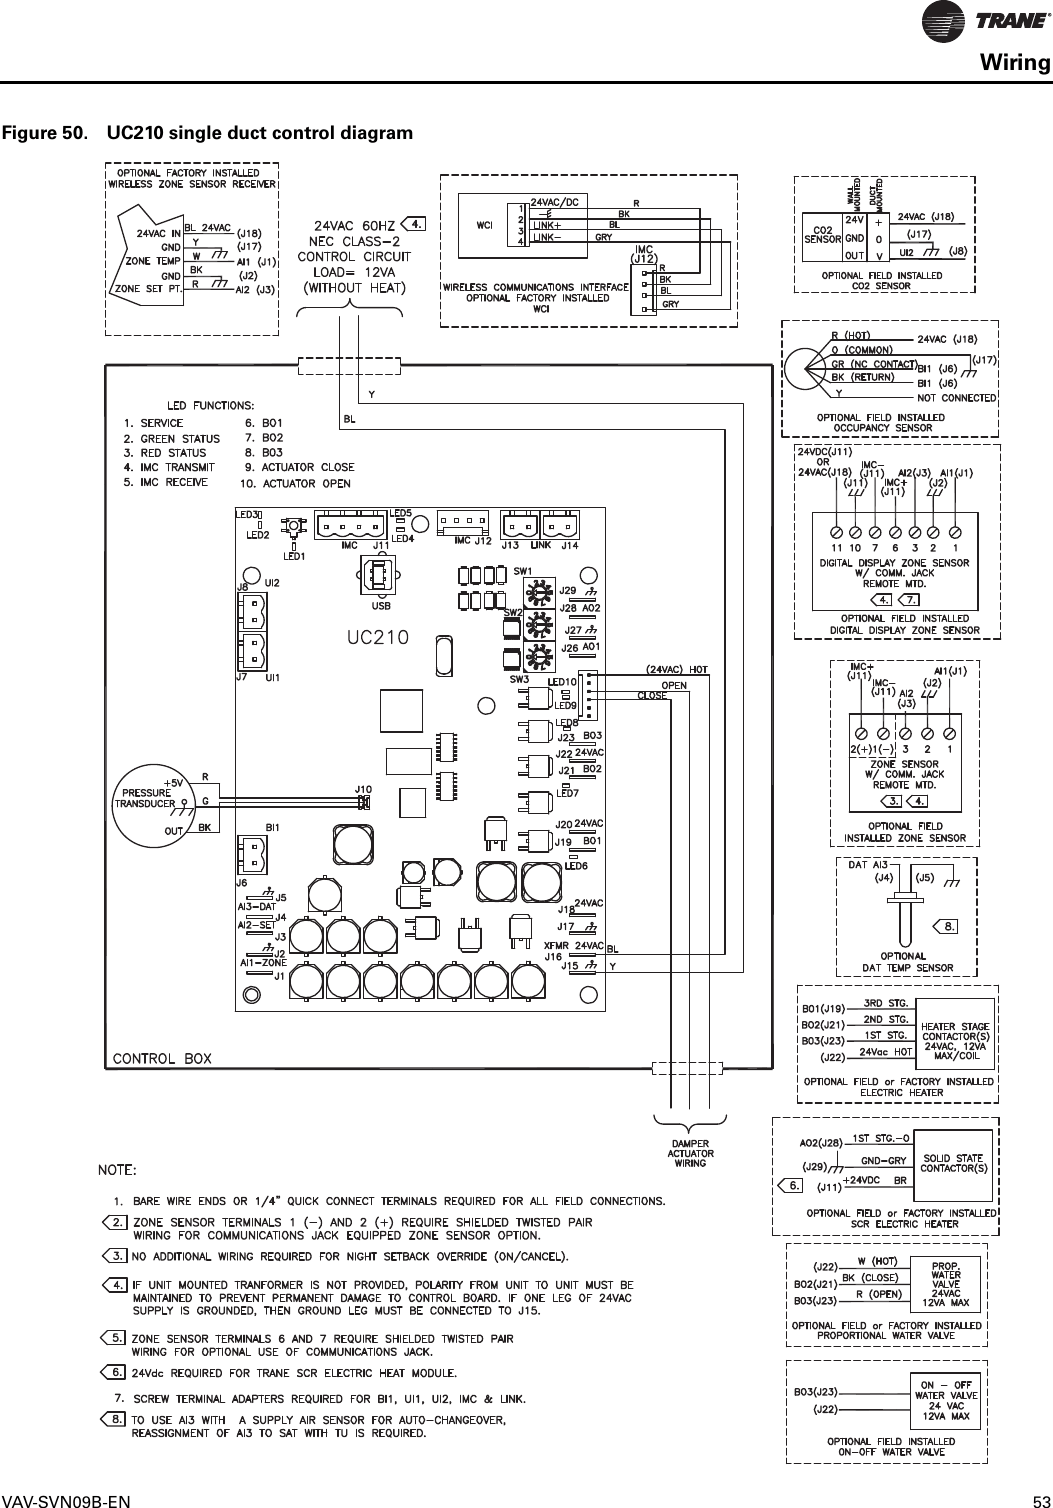 trane vav wiring diagram jeep cherokee stereo xt500c thermostat imageresizertool com